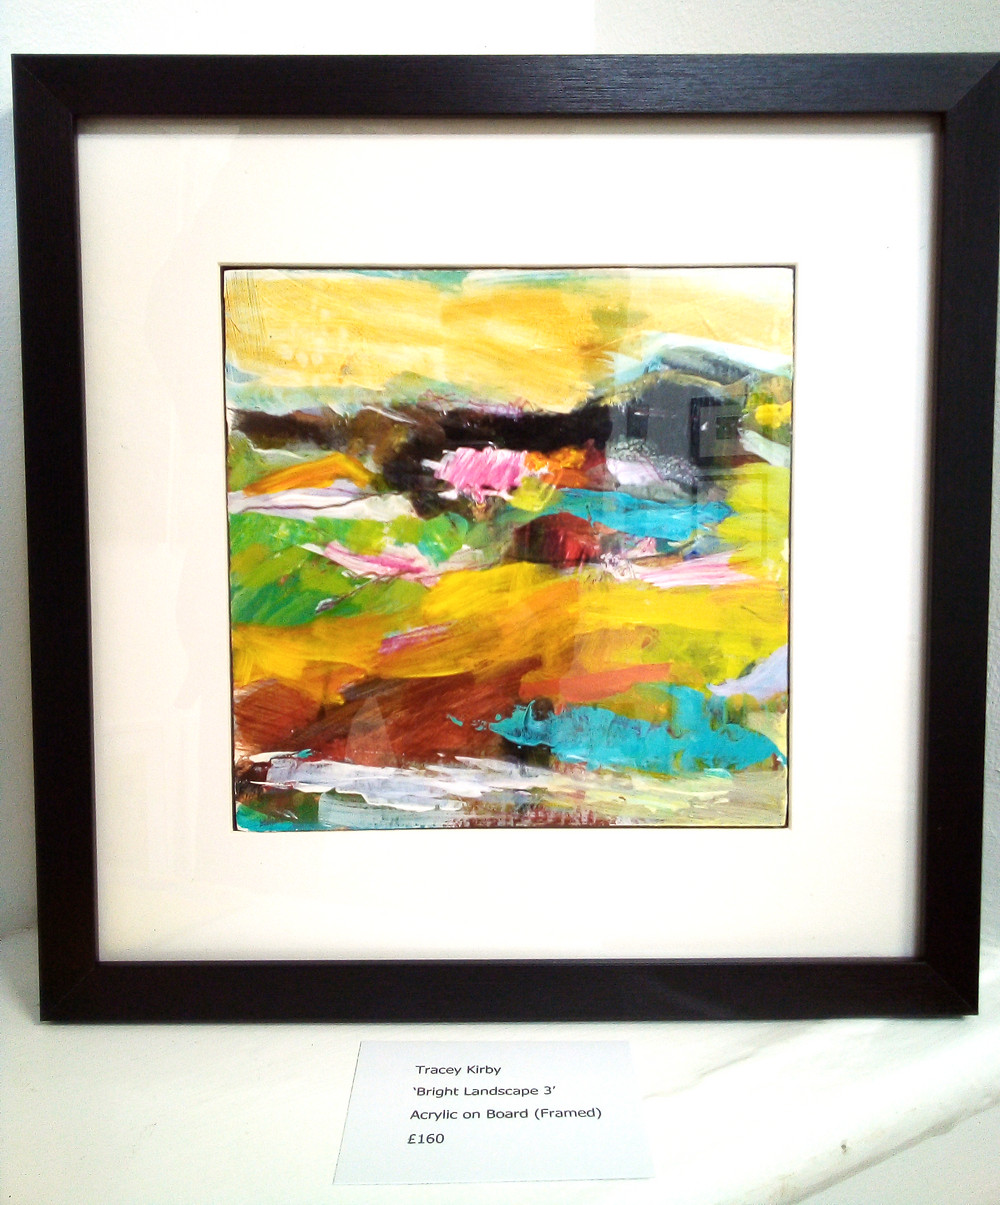 Tracey Kirby small abstract painting